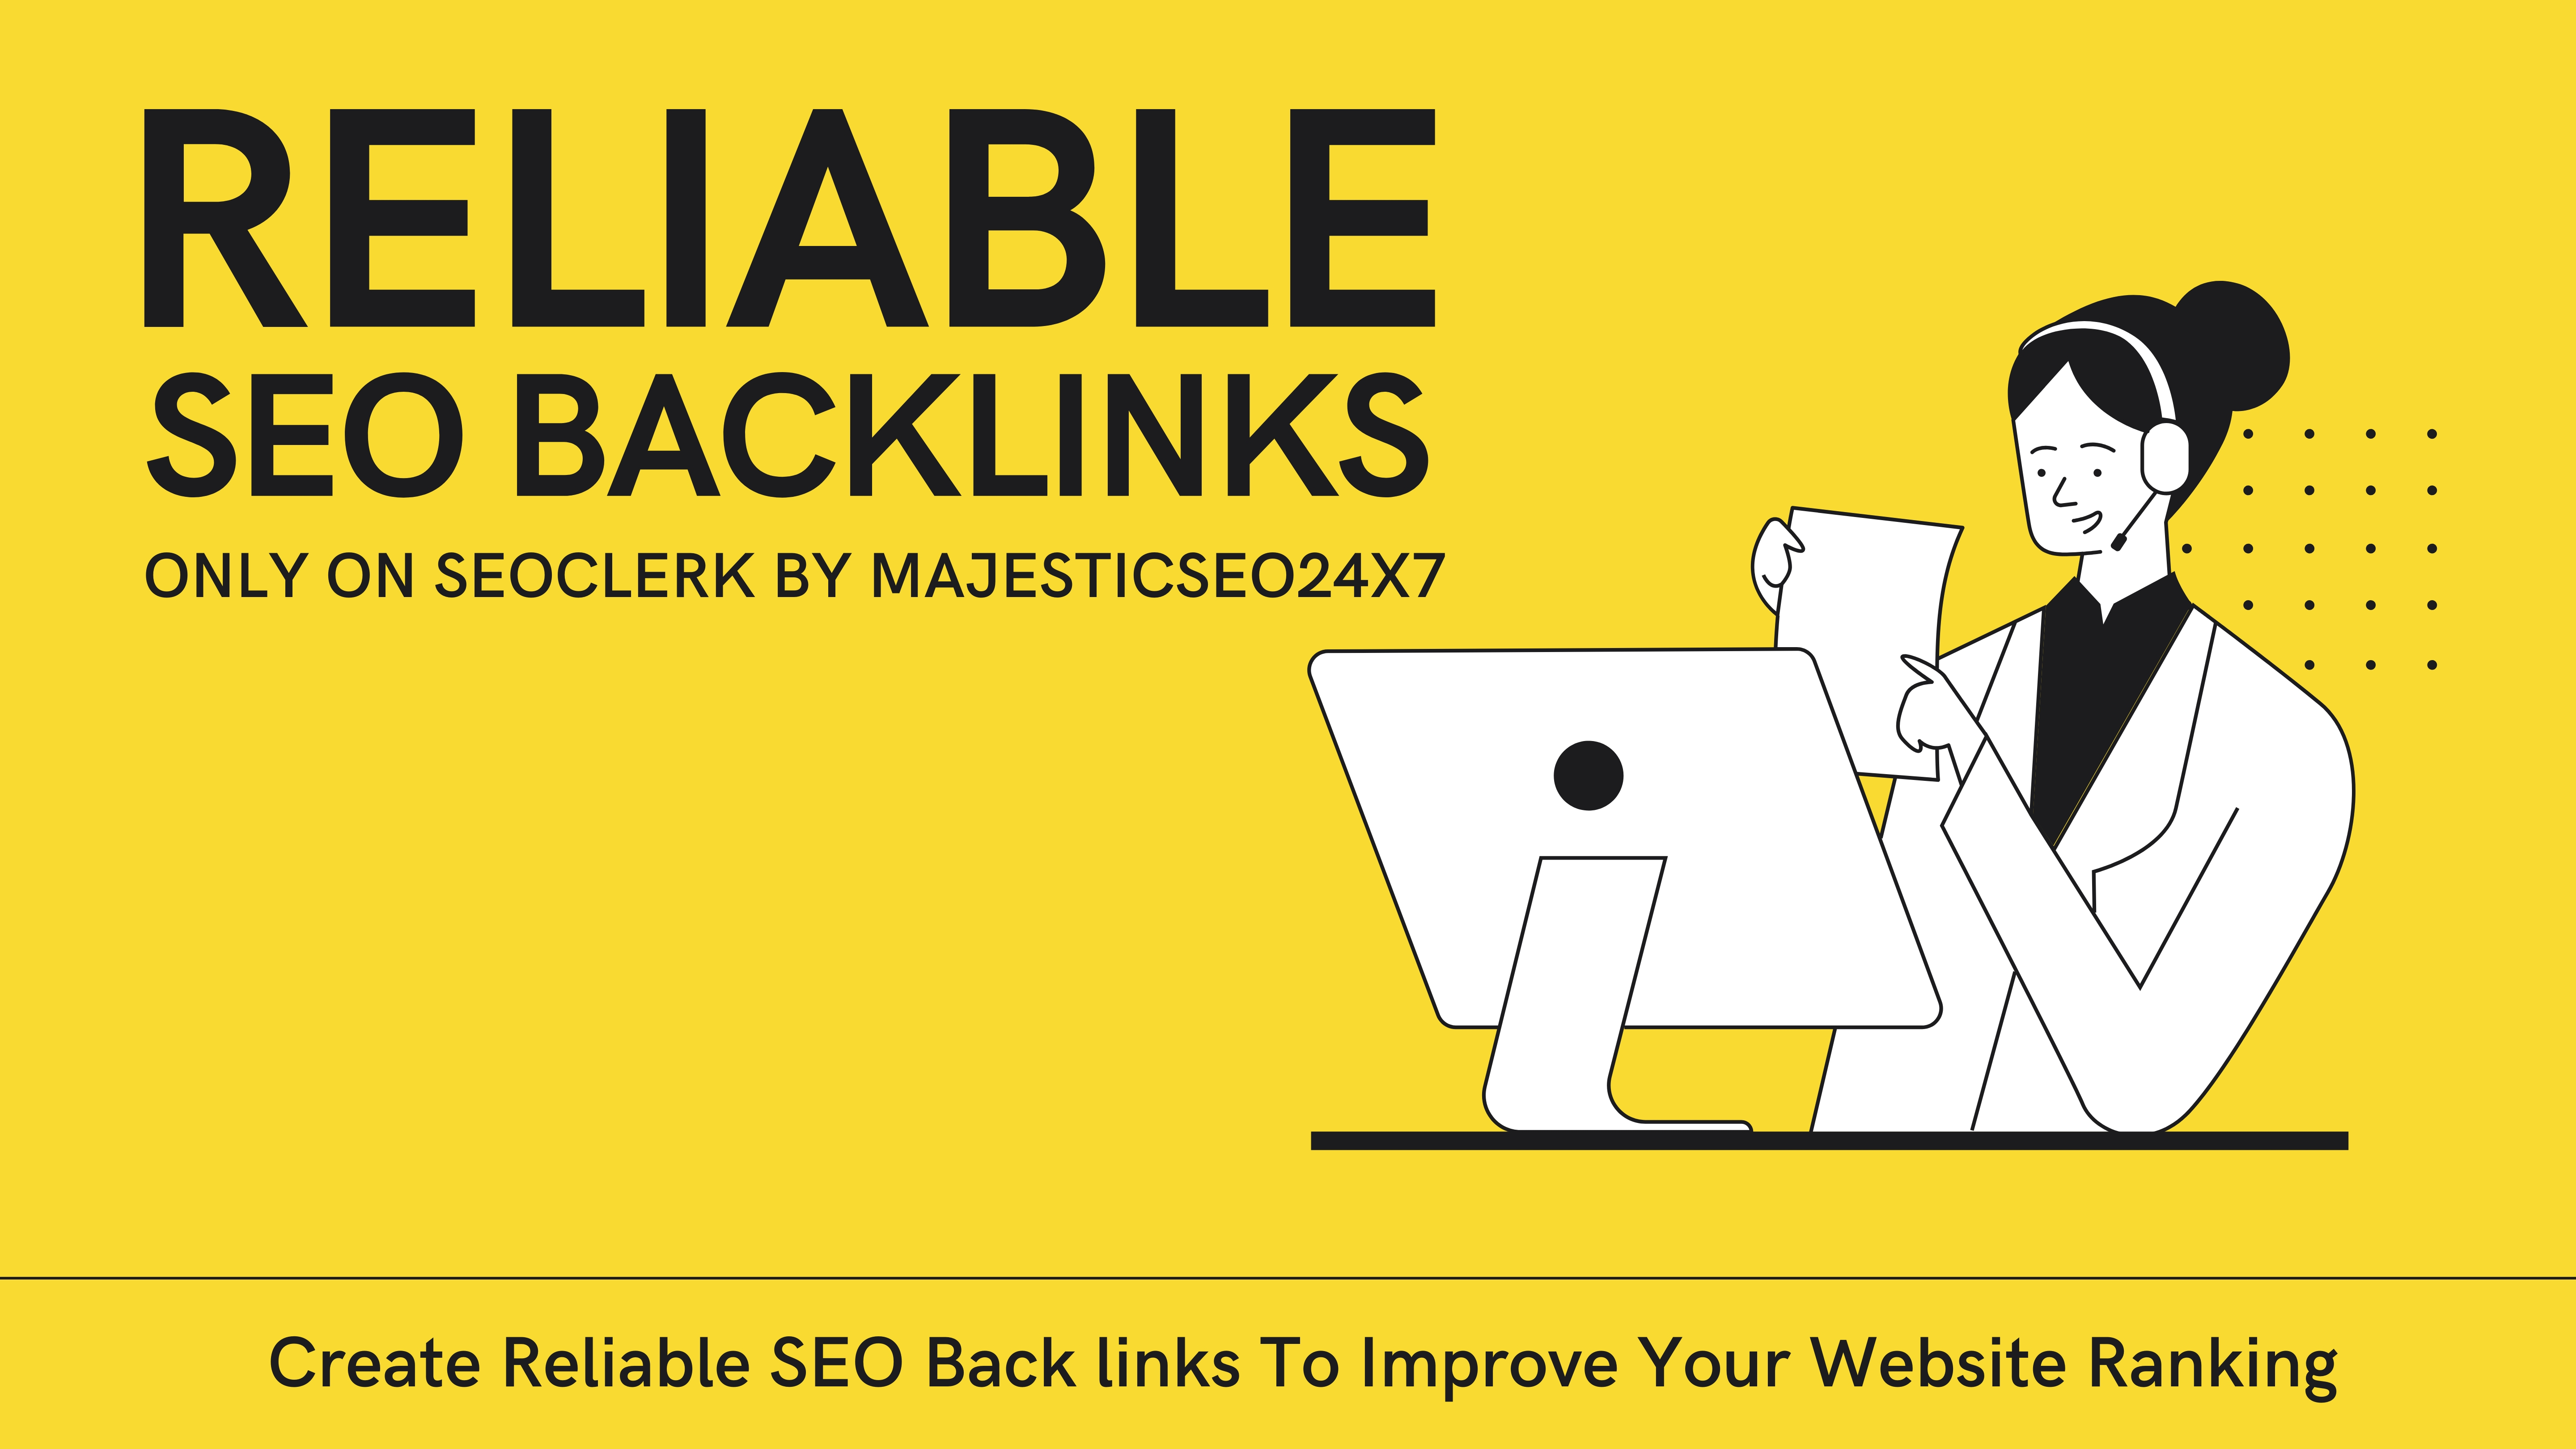 Create Reliable SEO Back links To Improve Your Website Ranking